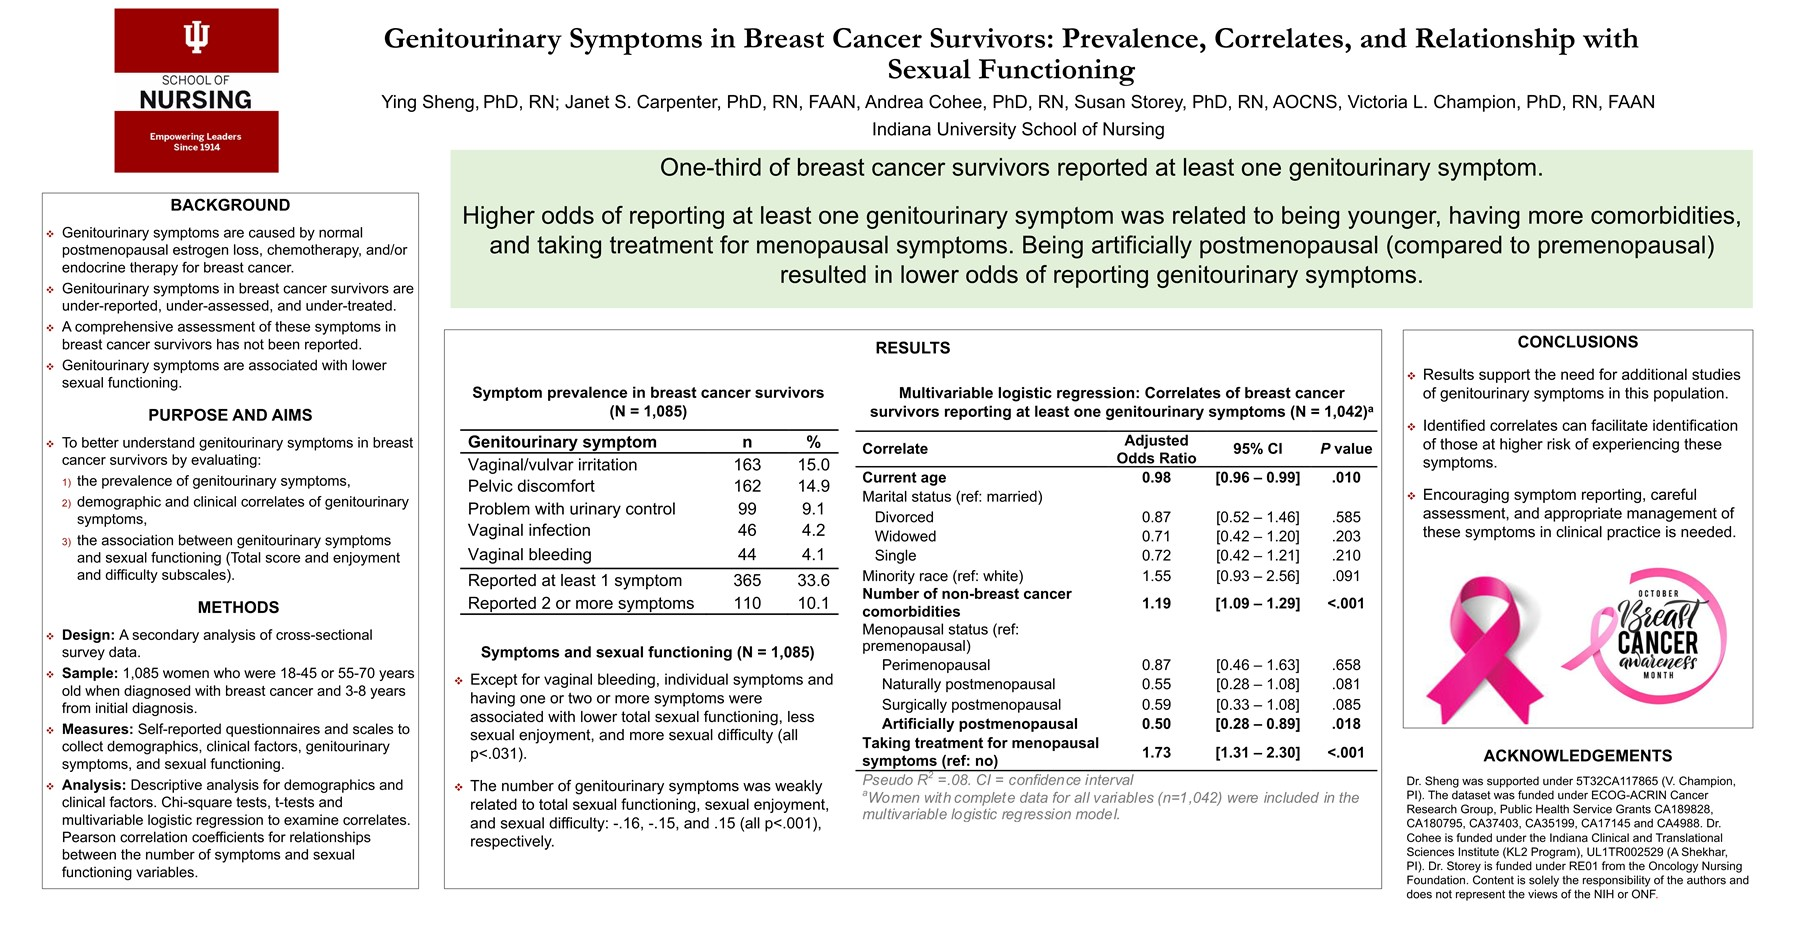 Genitourinary Symptoms in Breast Cancer Survivors: Prevalence, Correlates, and Relationship with Sexual Functioning